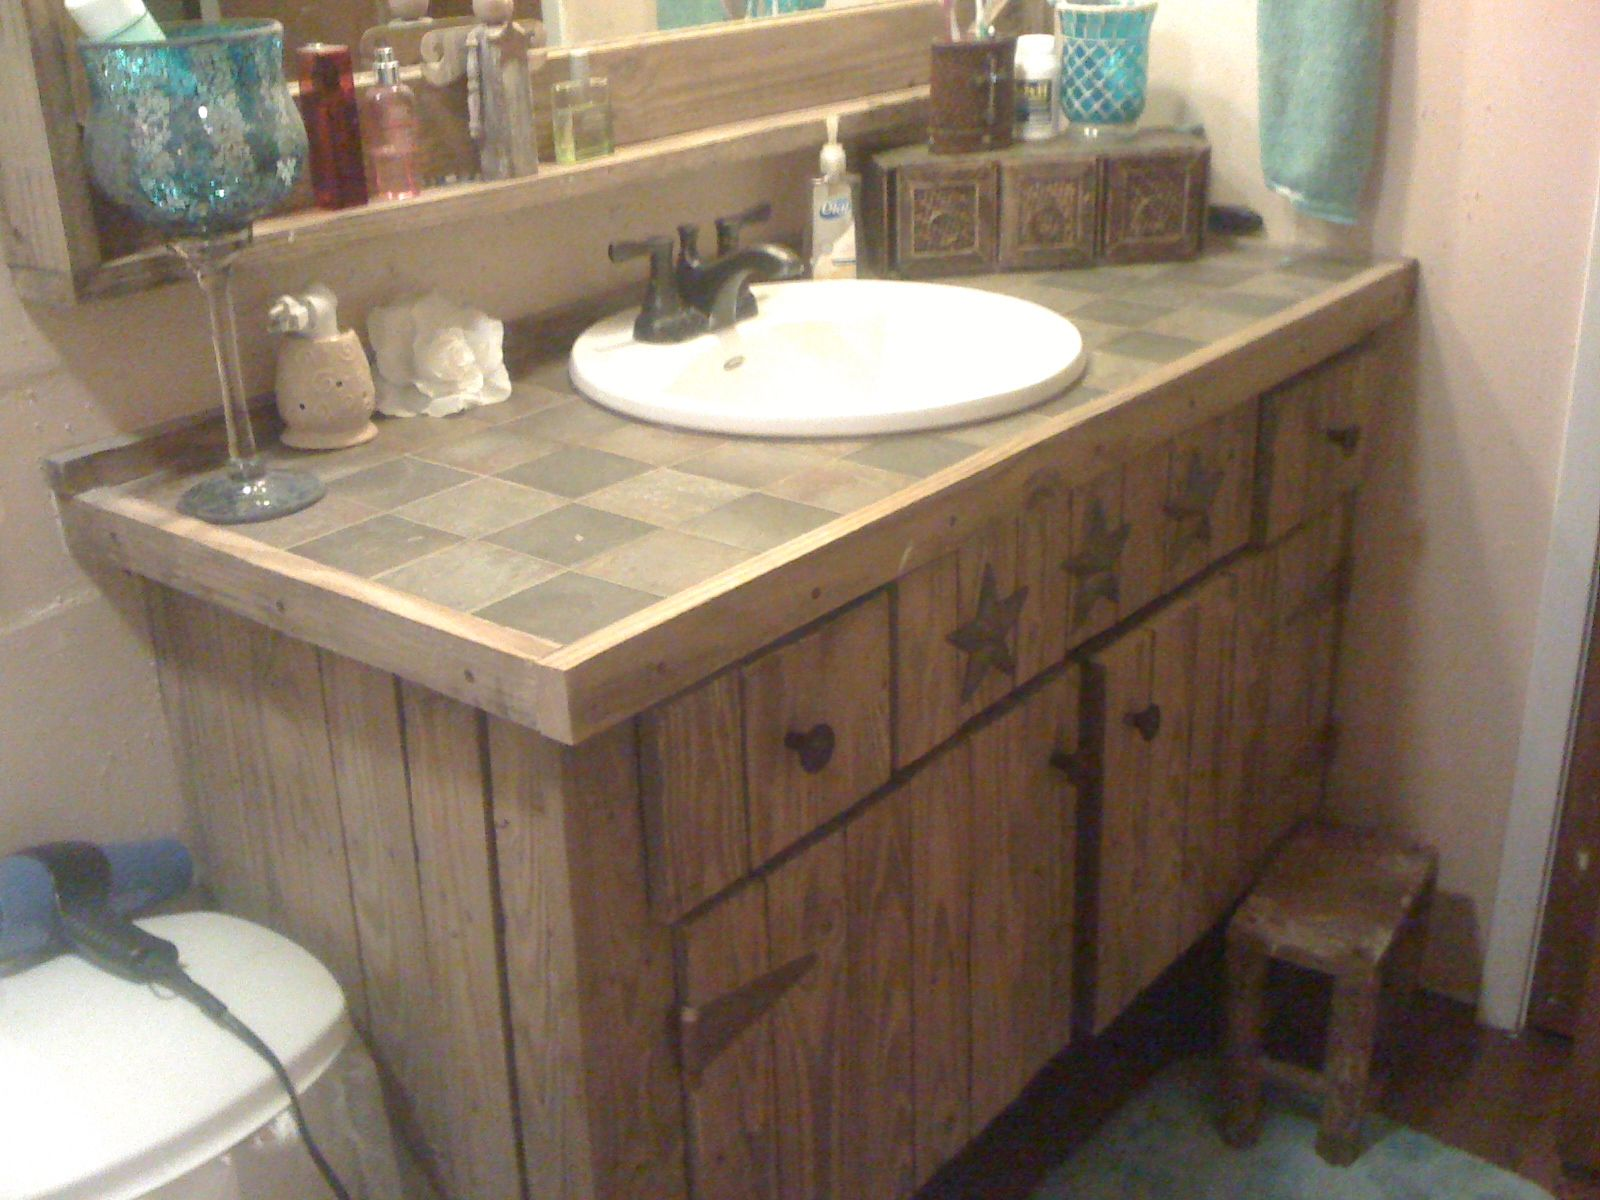 homes rustic walls cabin design prepossessing sets house set bat bathrooms inspired images quality western stone countertops natural highest and gallery nursery accessories floor for bathroom vanity ideas the wall traditional about delectable exquisite style sinks tile log baby